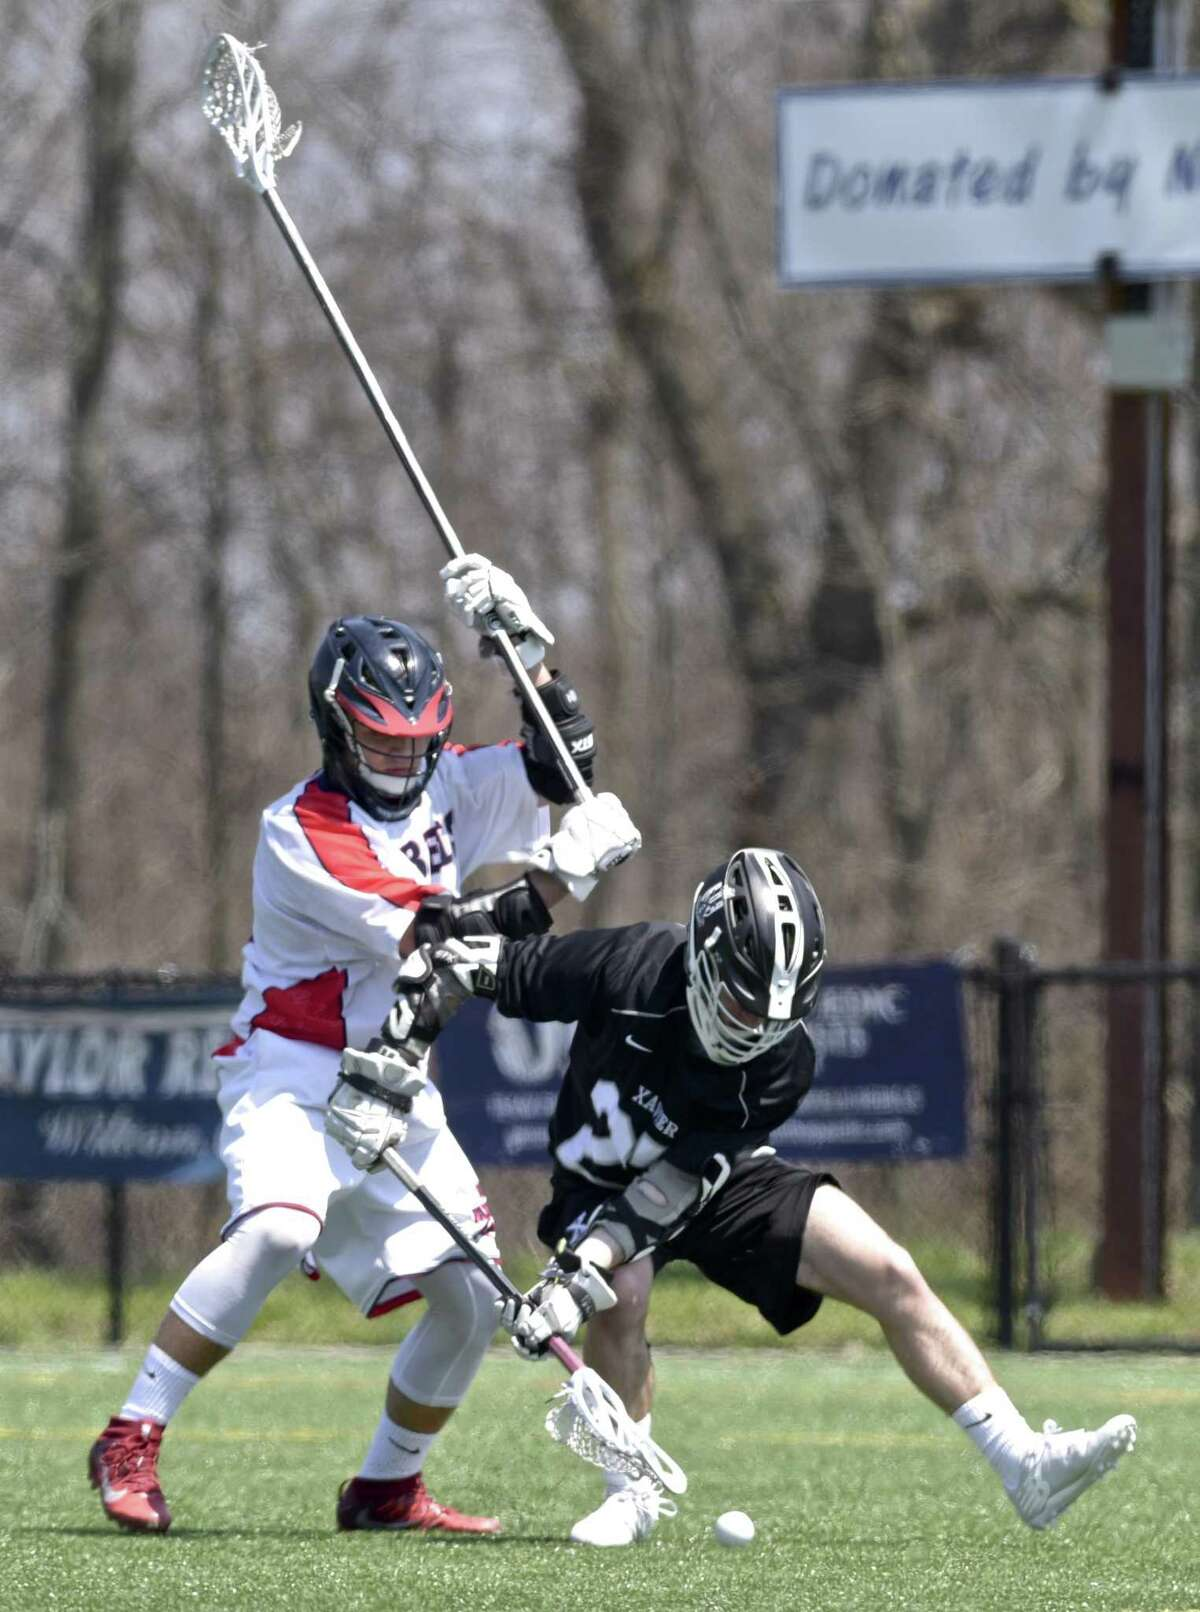 new Fairfield's Zachary Buffington (4) and Xavier's Justin Prete (27) fight for the ball in the boys lacrosse game between Xavier and New Fairfield high schools, Saturday, April 28, 2018, at New Fairfield High School, New Fairfield, Conn.